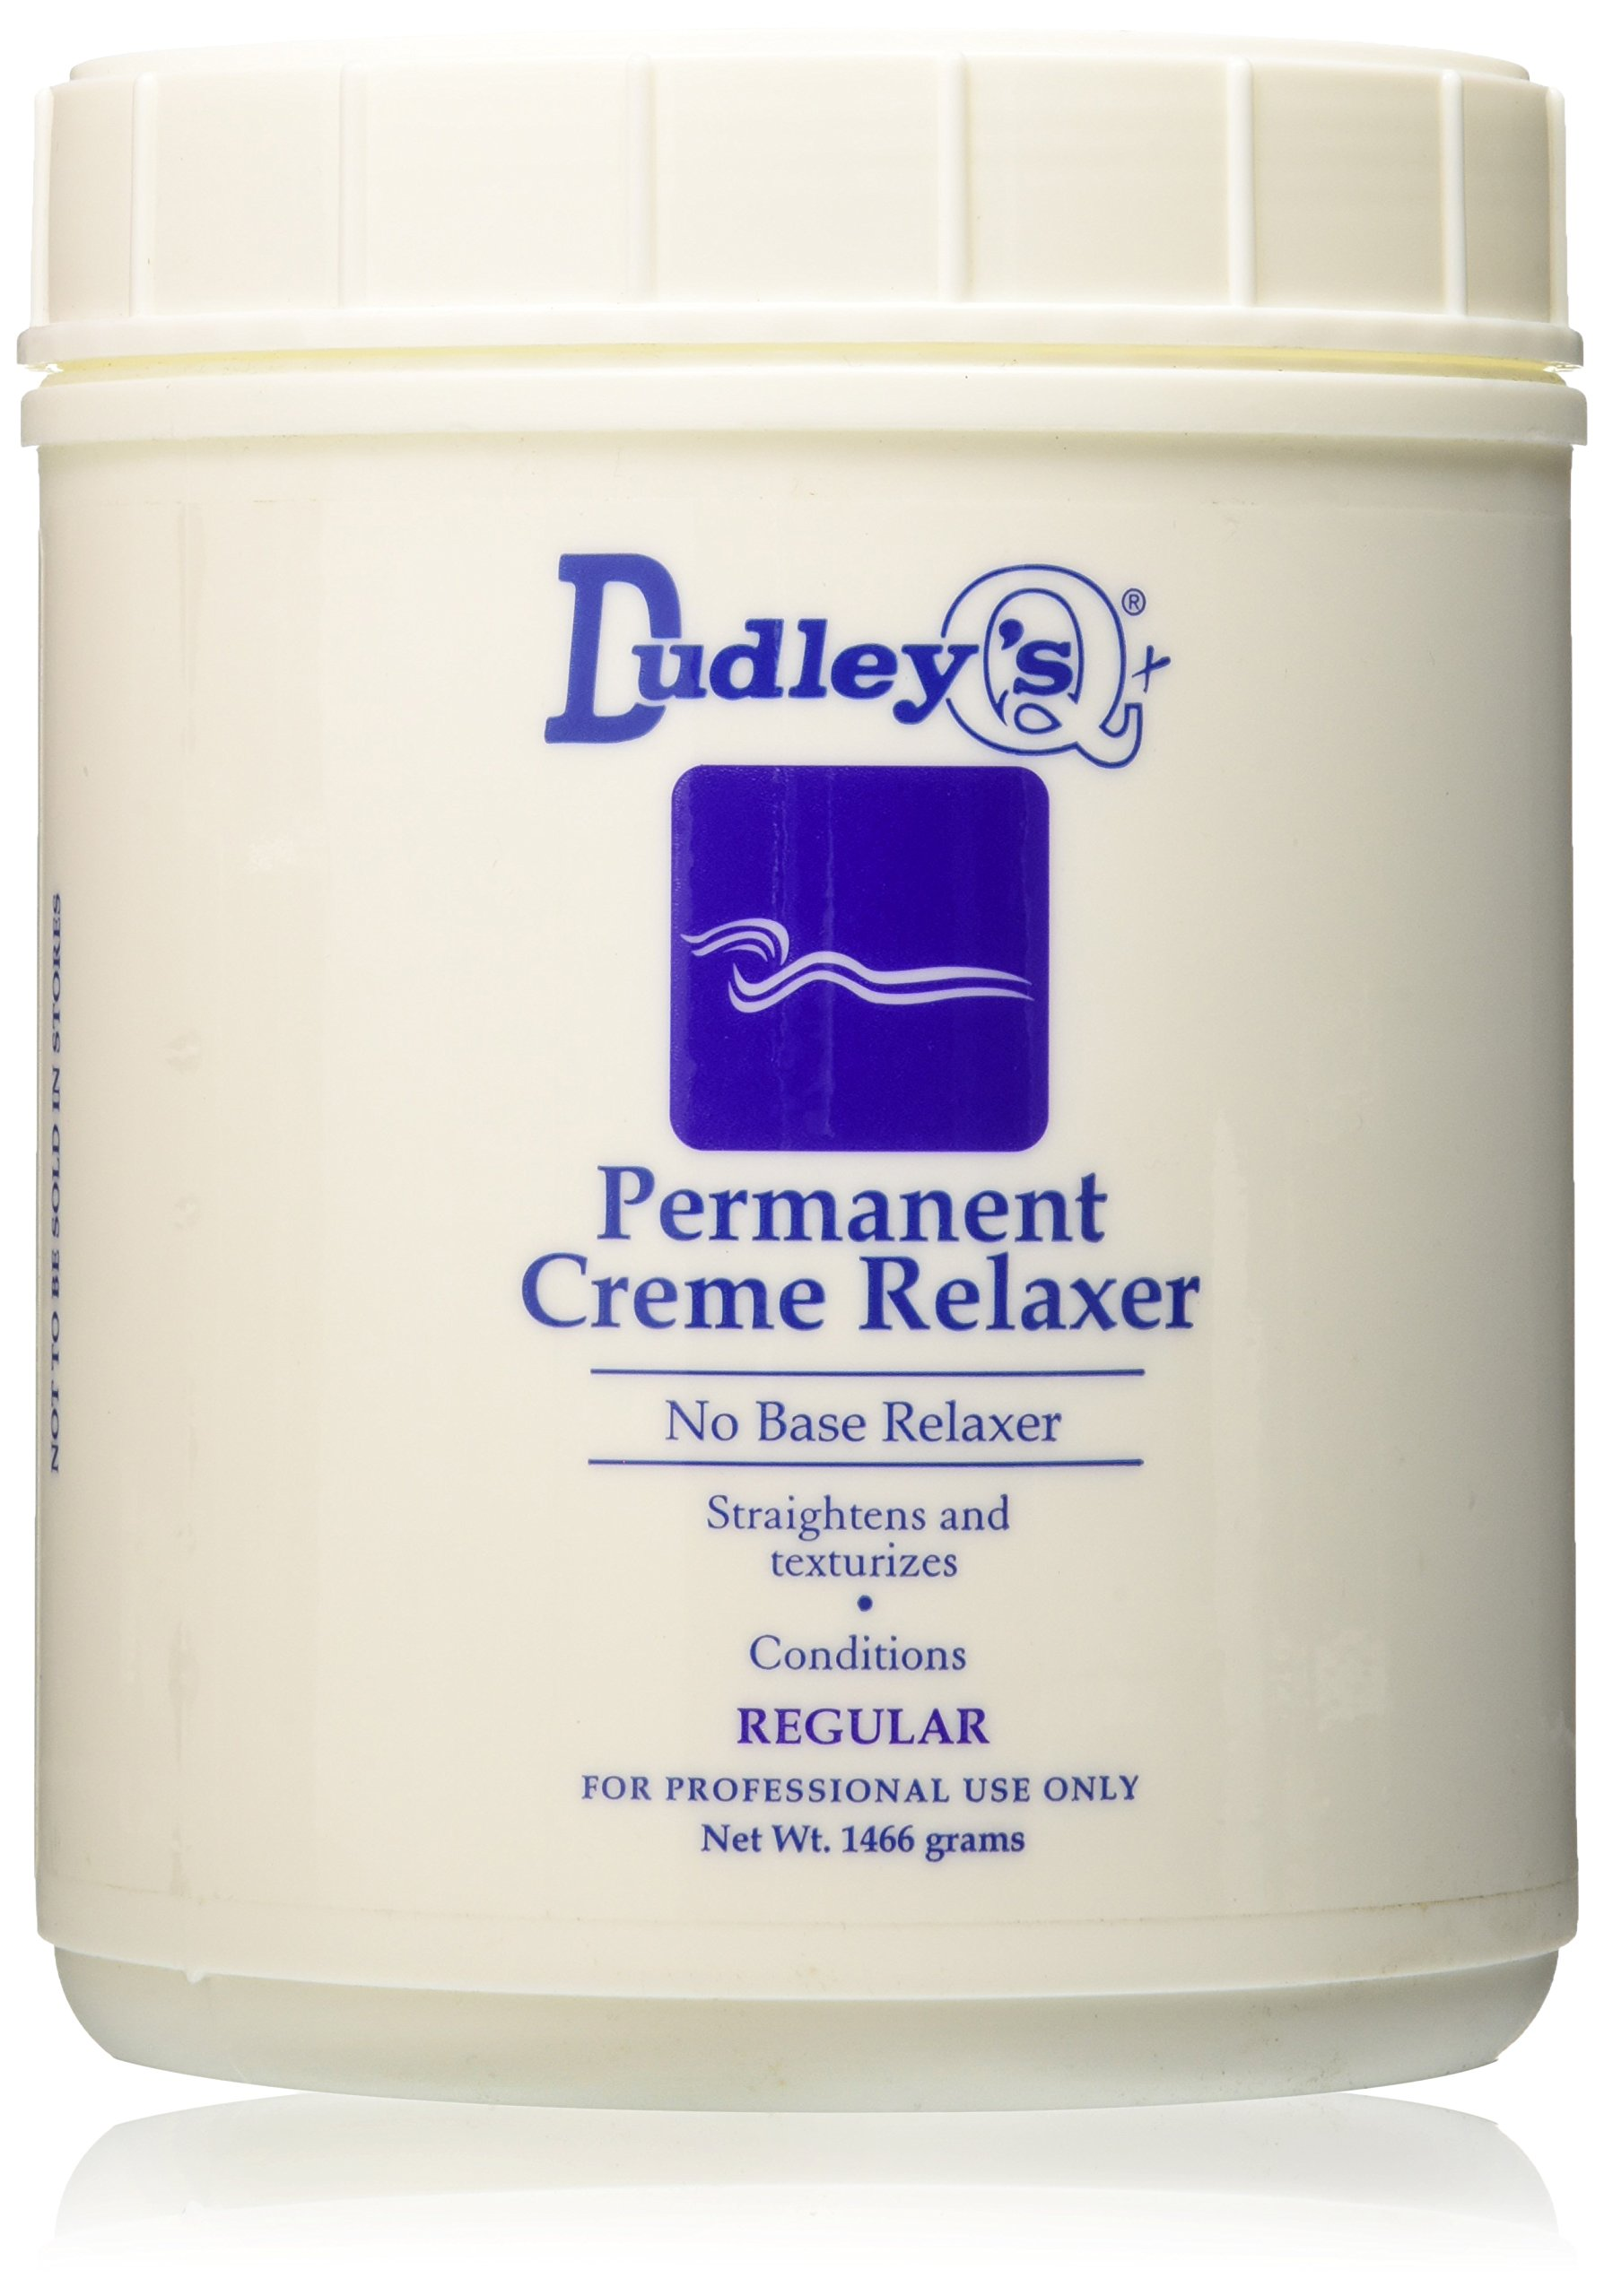 Dudley's No Base Regular Permanent Creme Relaxer, 52 Ounce